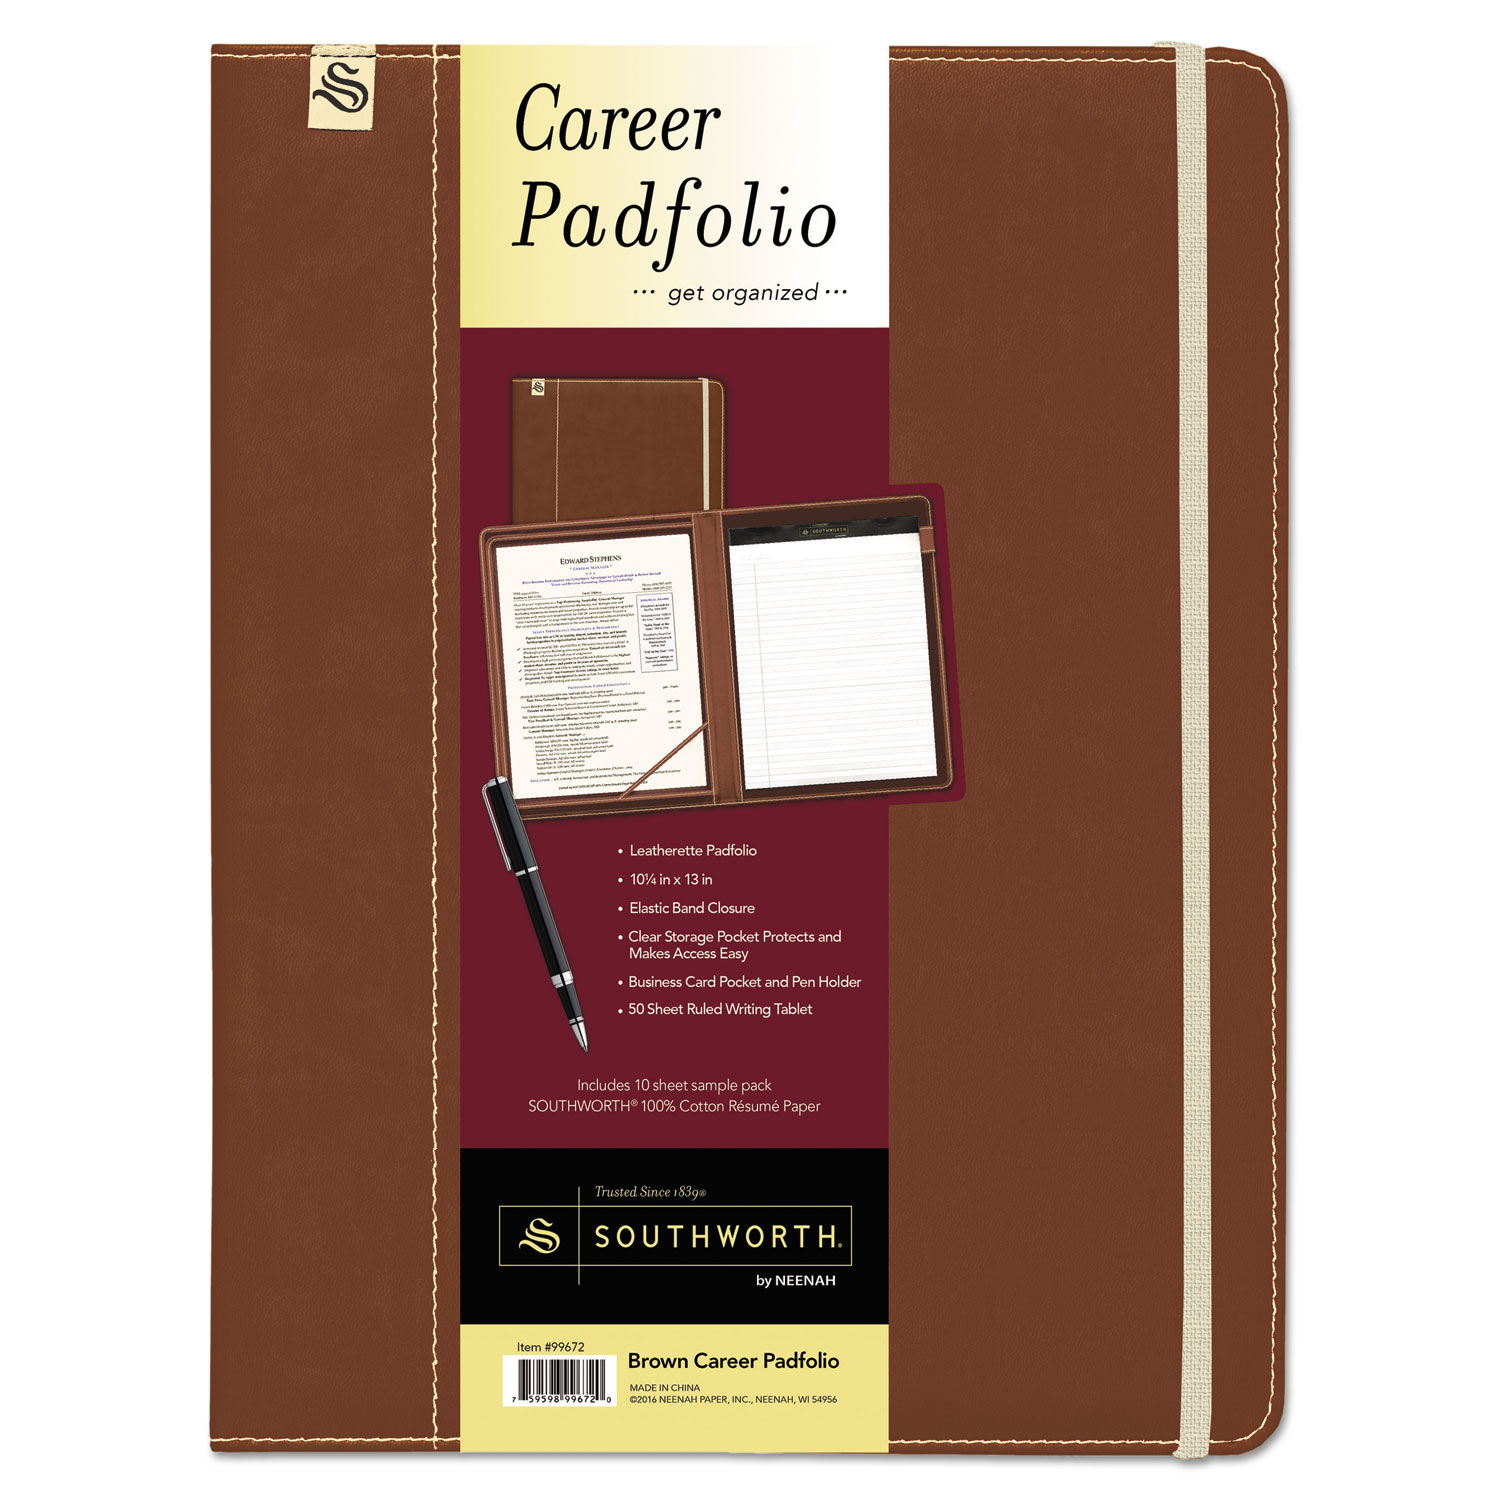 Career Pad Folio By Southworth Sou99671 Ontimesupplies Com